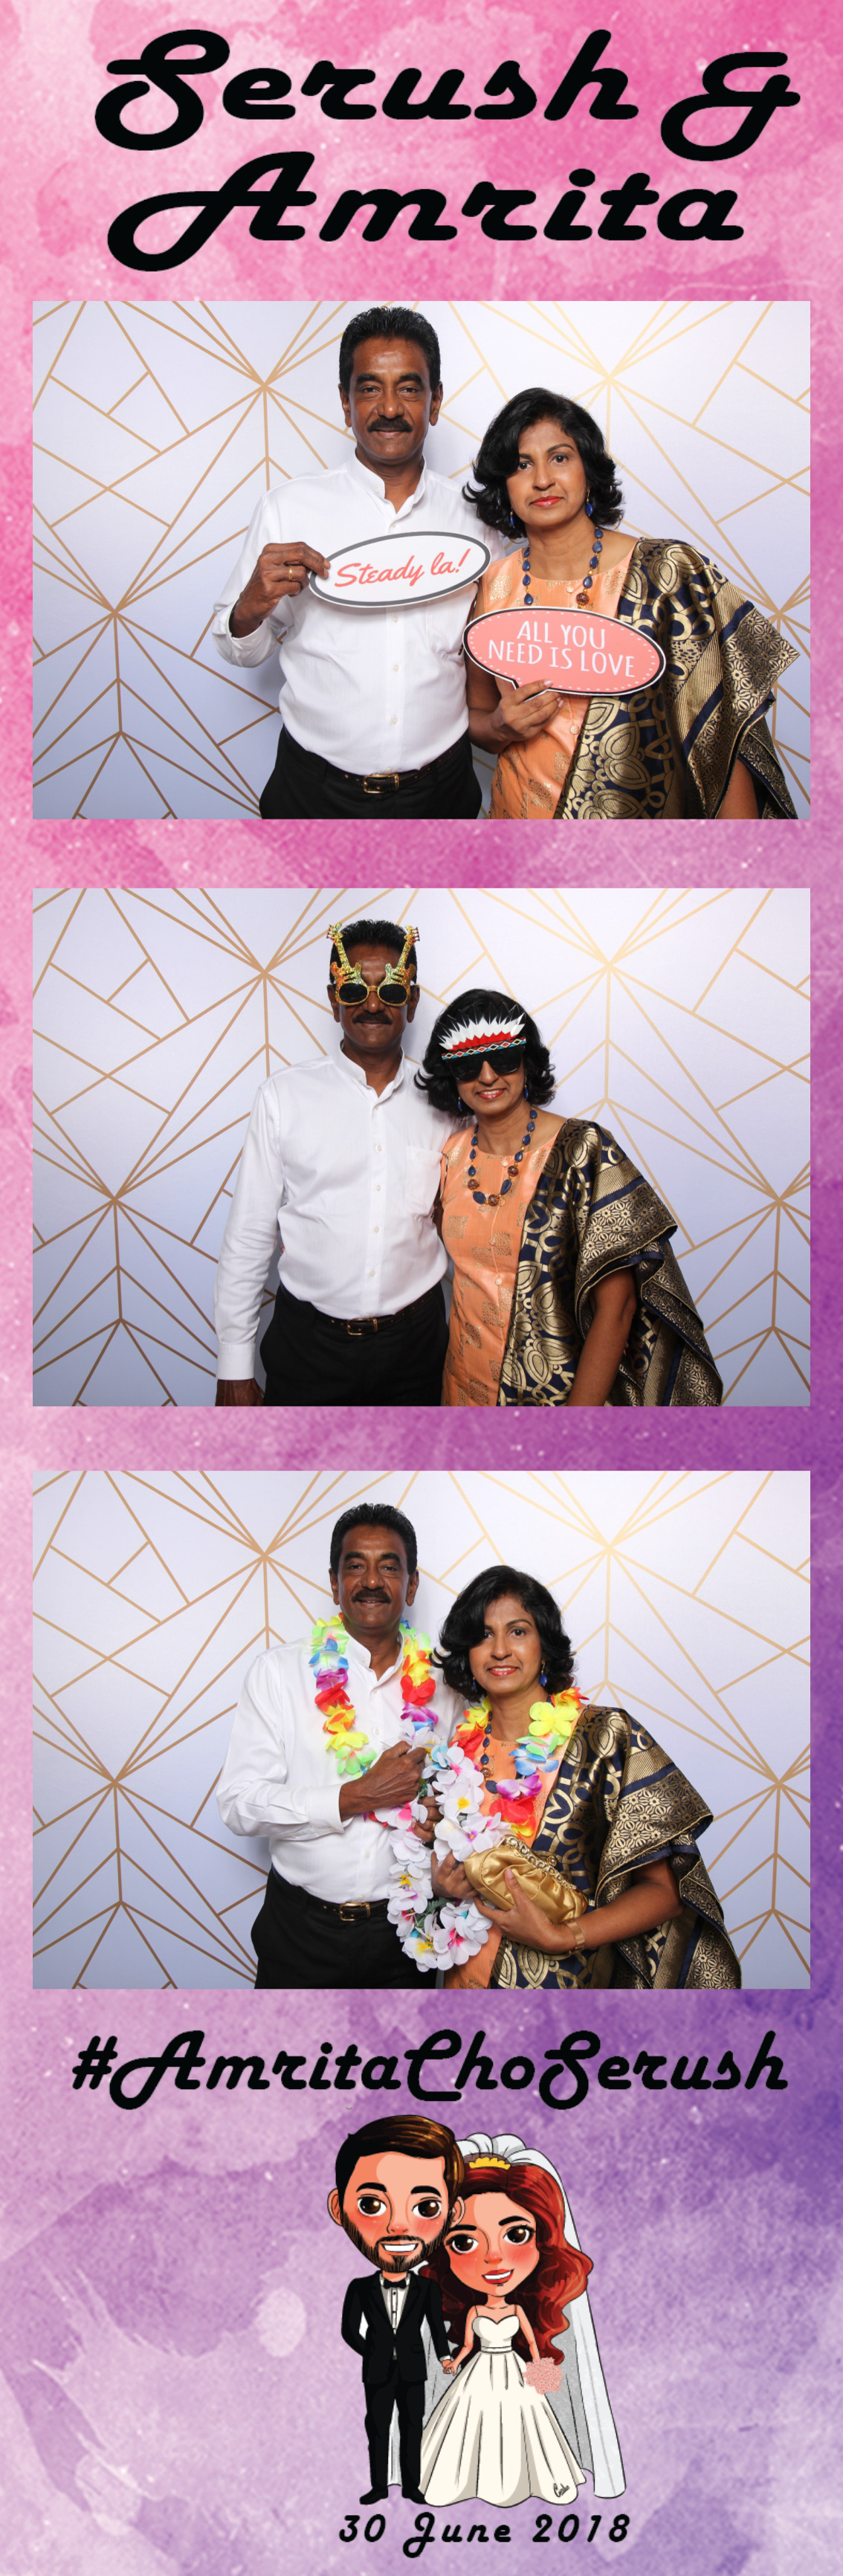 whoots photo booth singapore wedding (2